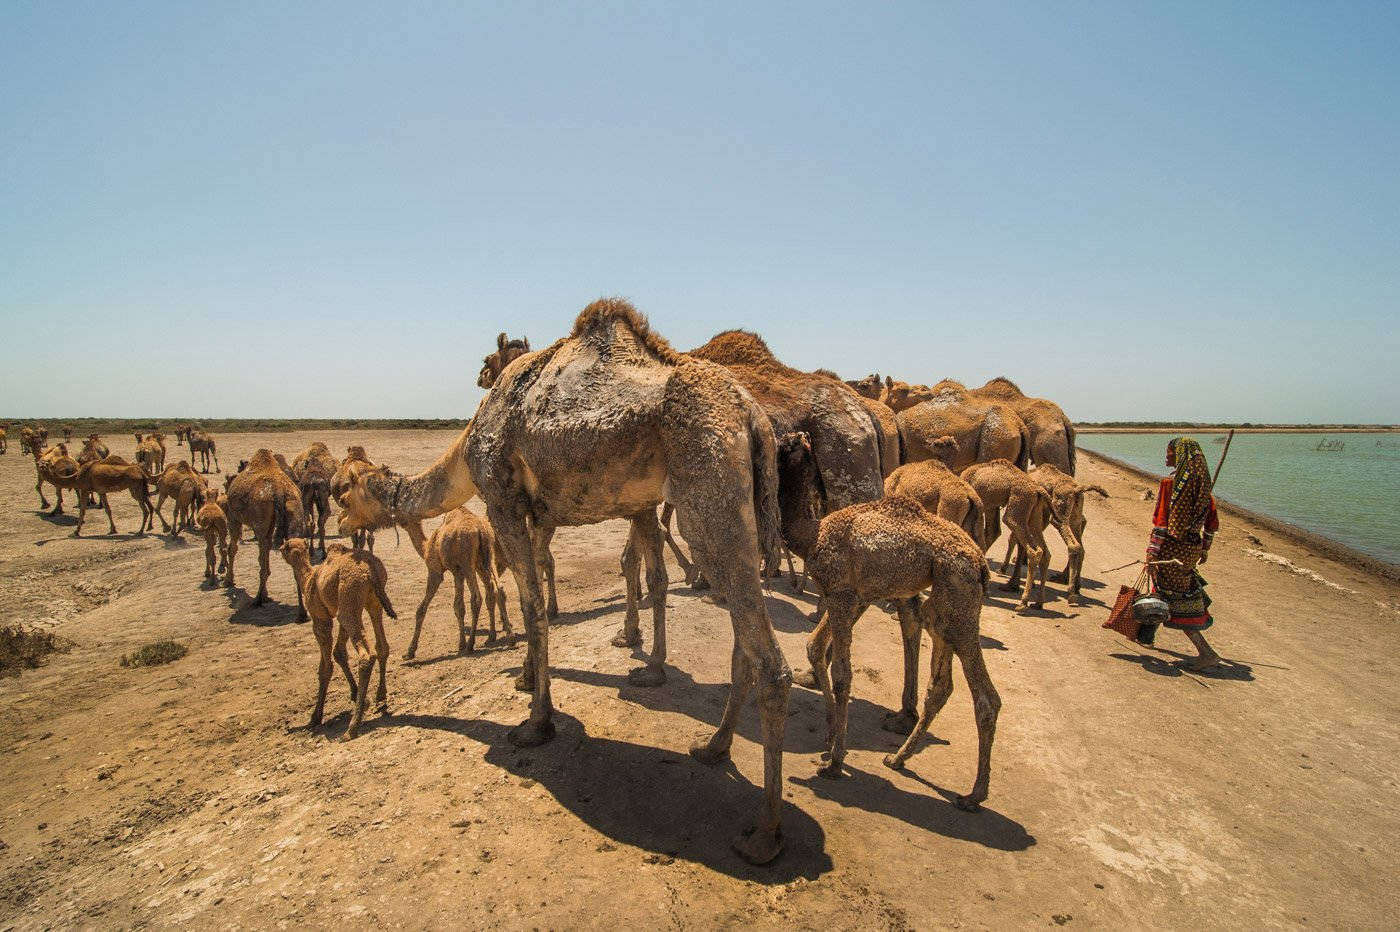 Jat Haseena walking with her herd of Kharai camels in search of water. Every year during the peak of summer, food and water are so scarce that the family changes their location almost every alternate day. Credit: Ritayan Mukherjee/PARI